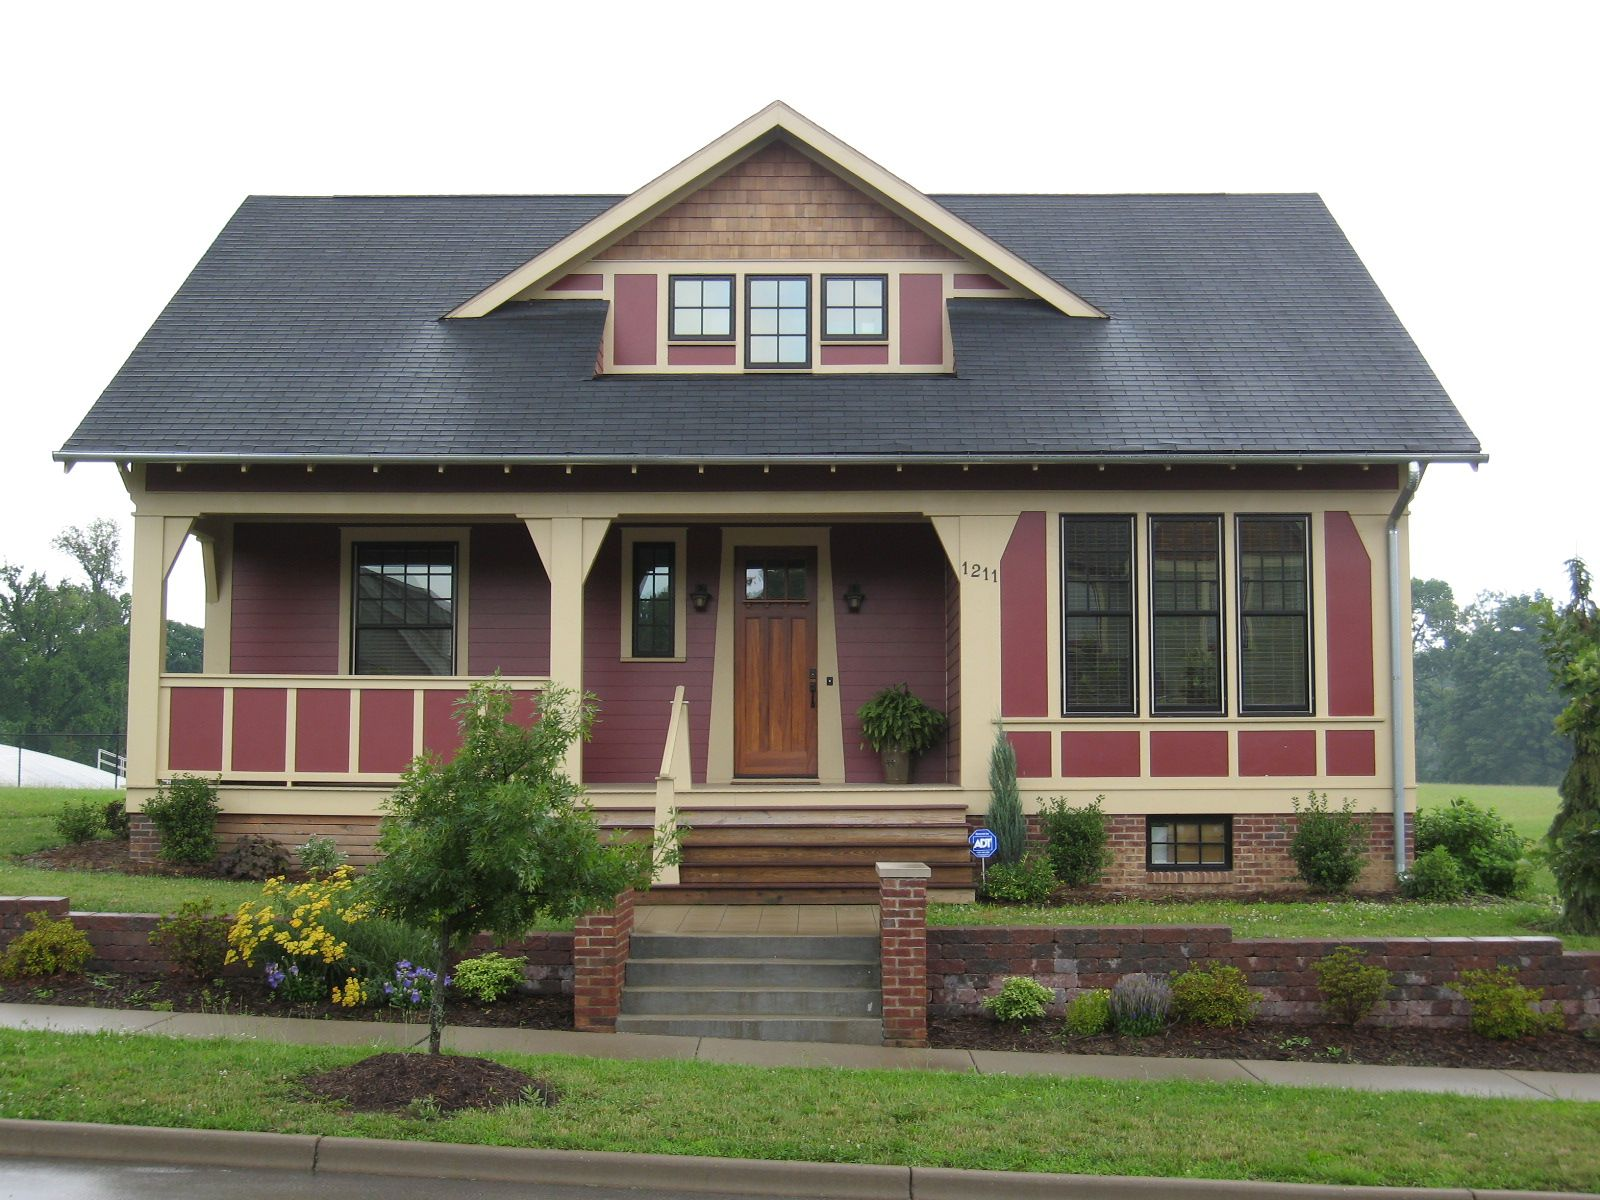 Craftsman bungalow traditional exterior minneapolis by richard - Red Bungalow